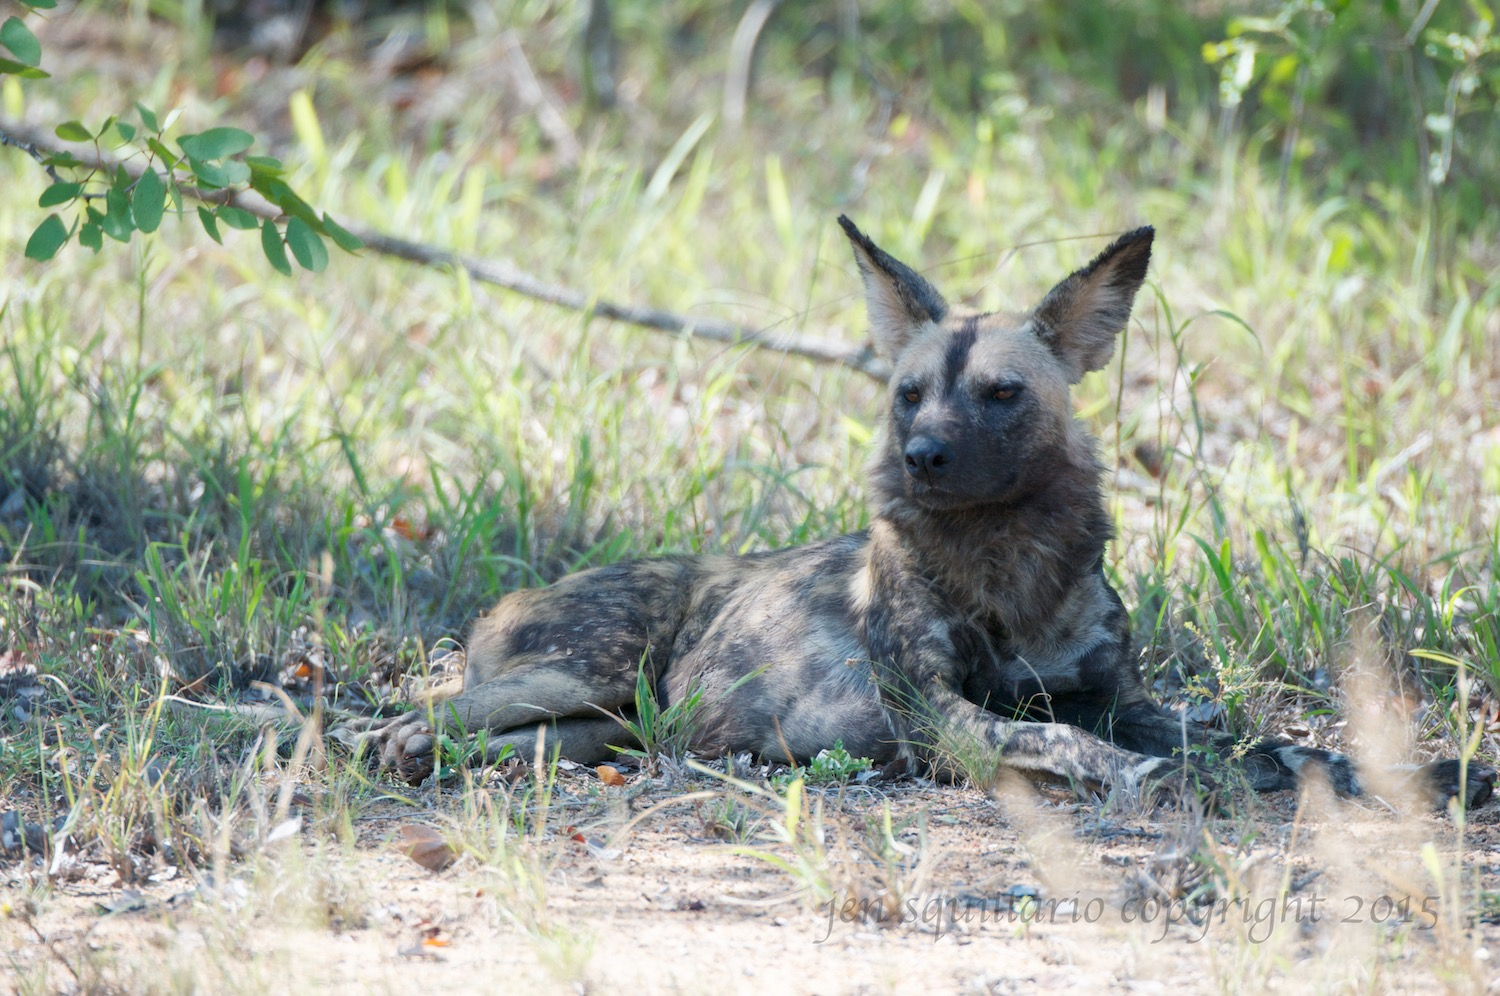 Every sighting of this rare animal is special.  Ian and I have been very lucky to have seen wild dogs on multiple occasions.